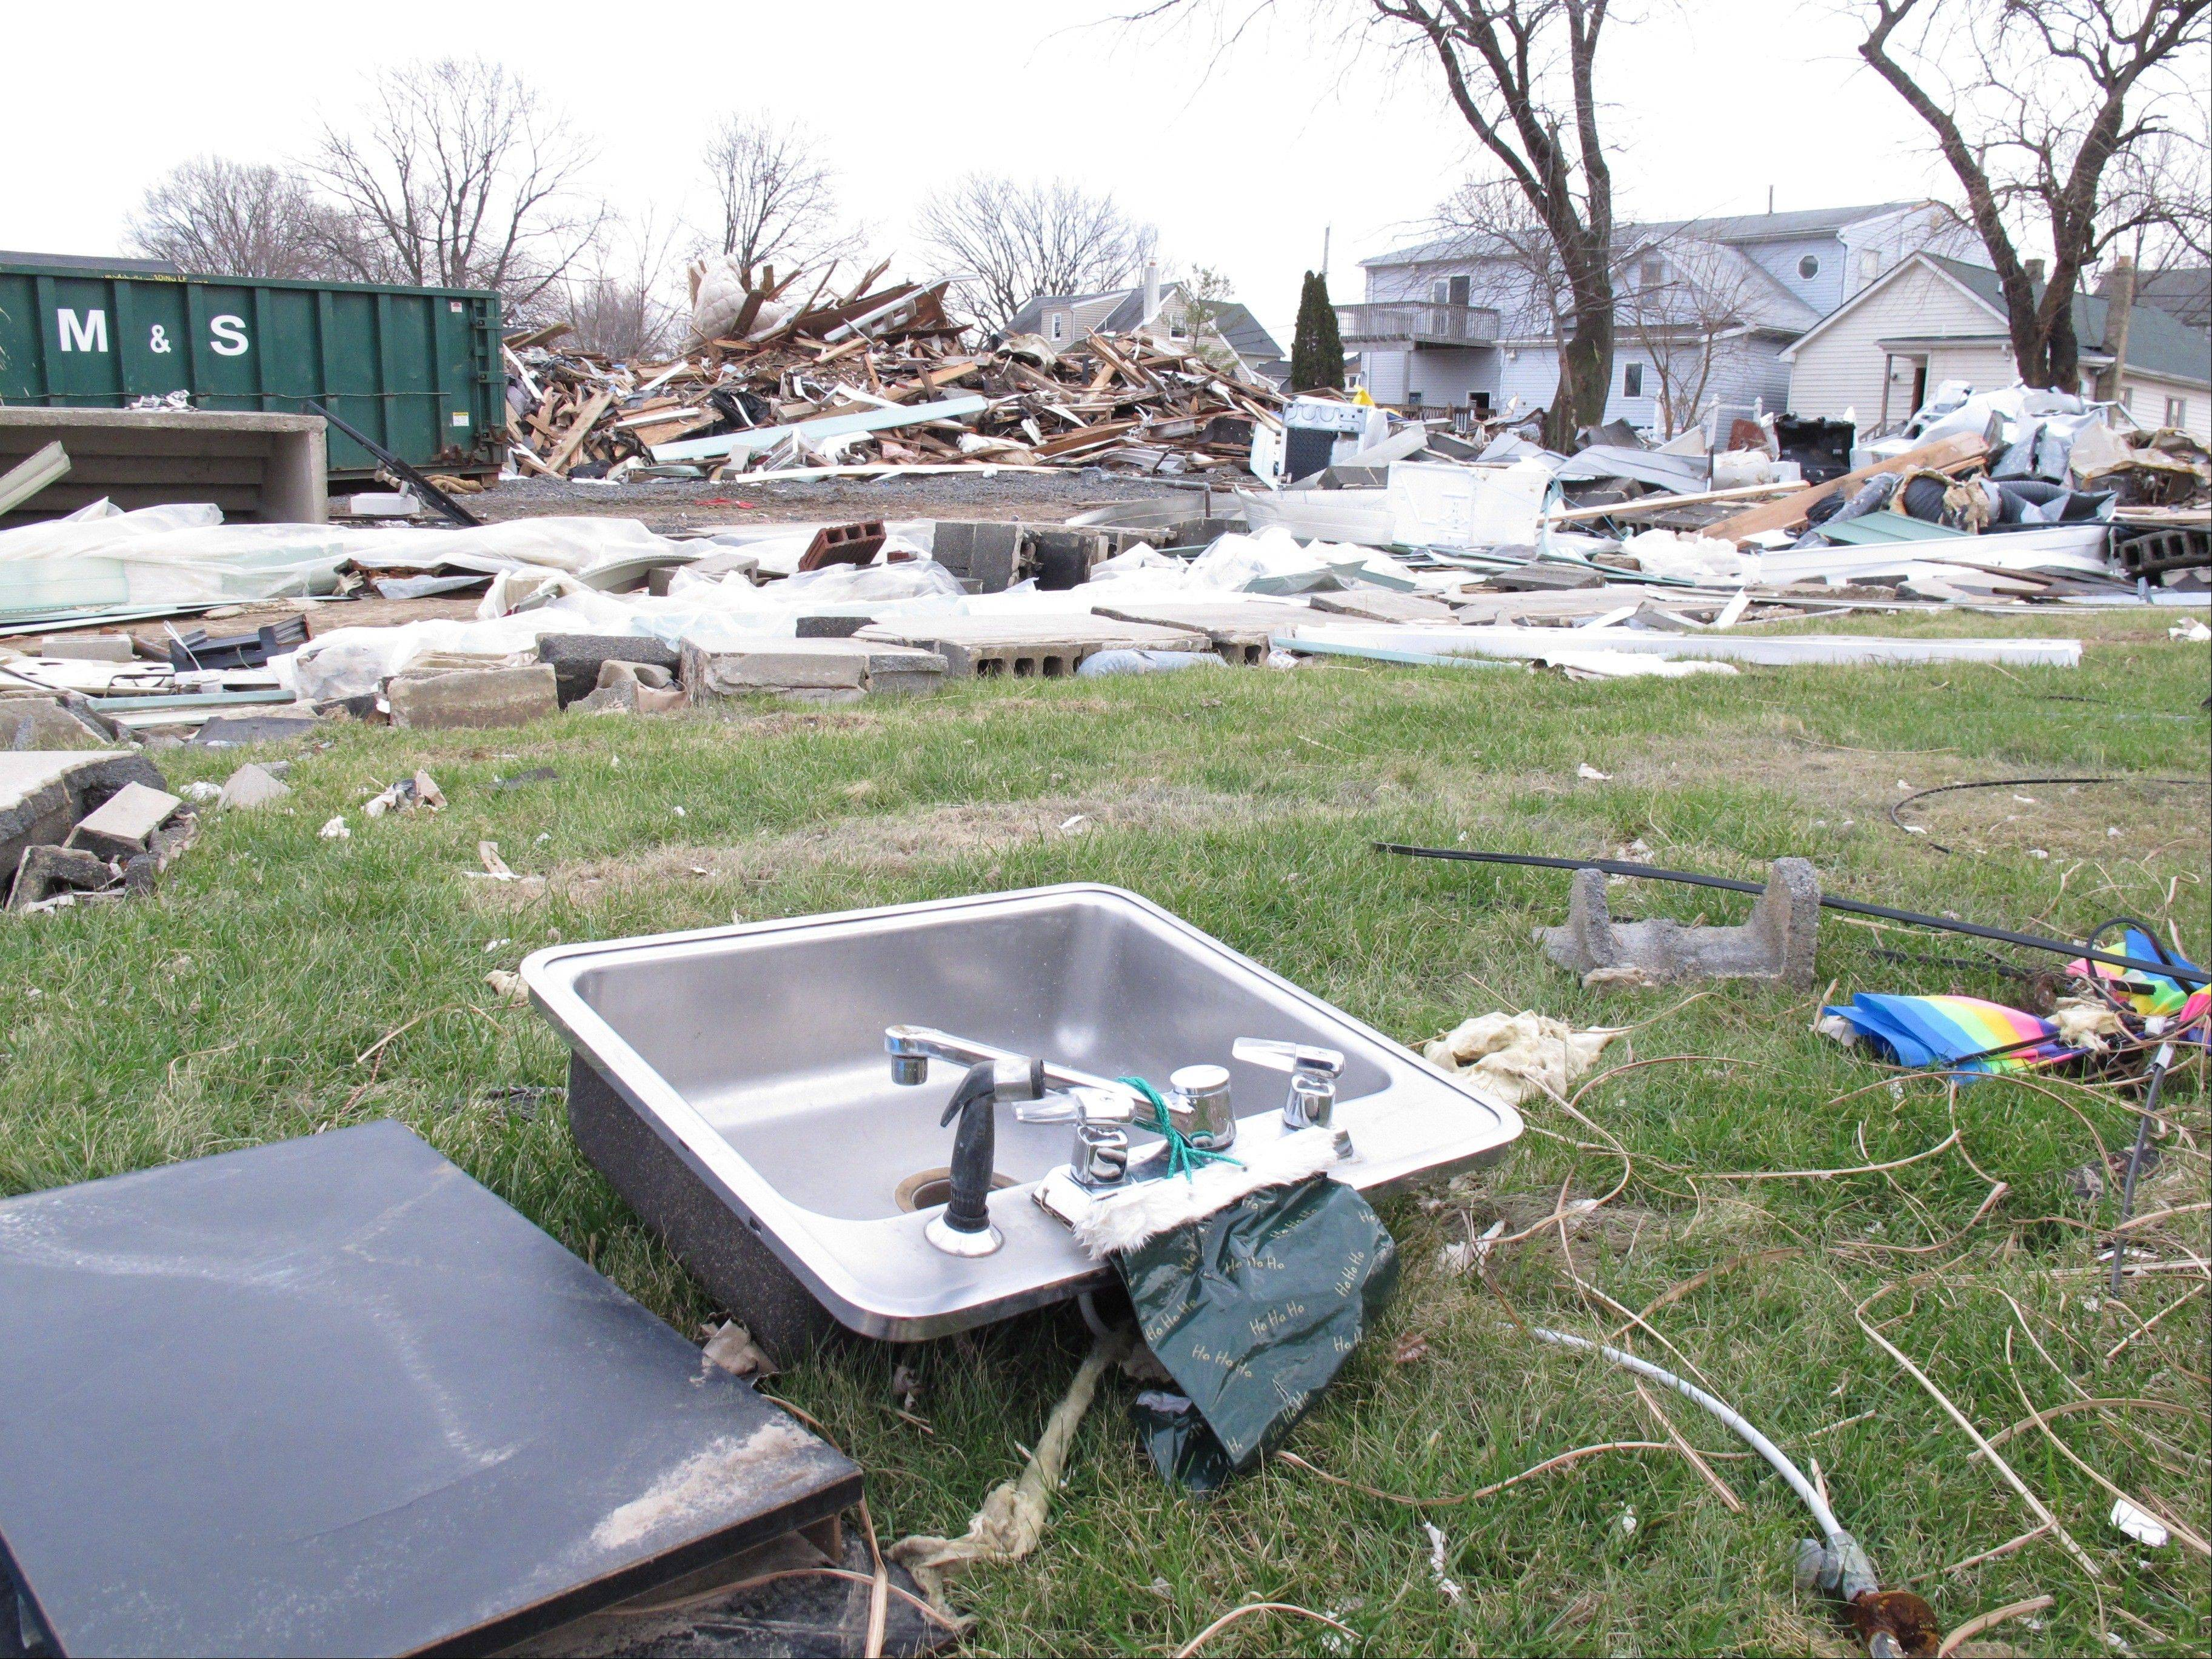 A kitchen sink is all that remains of the home that used to sit on this lot in Union Beach N.J., ssen here on Wednesday.